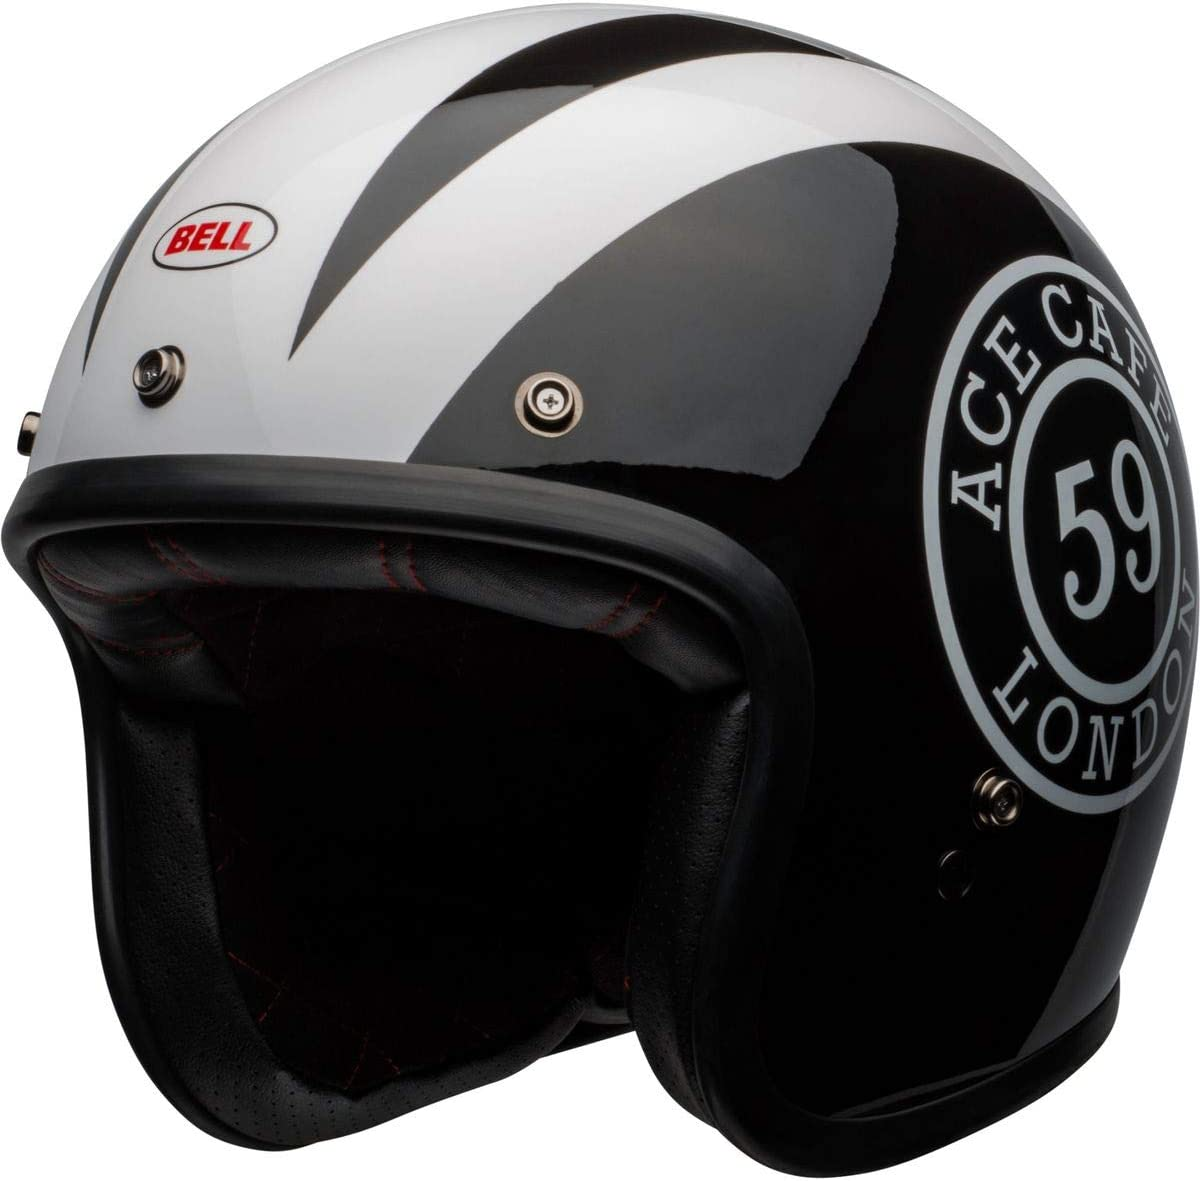 Ace Cafe 59 Gloss Black//White, X-Large Bell Custom 500 Special Edition Open-Face Motorcycle Helmet